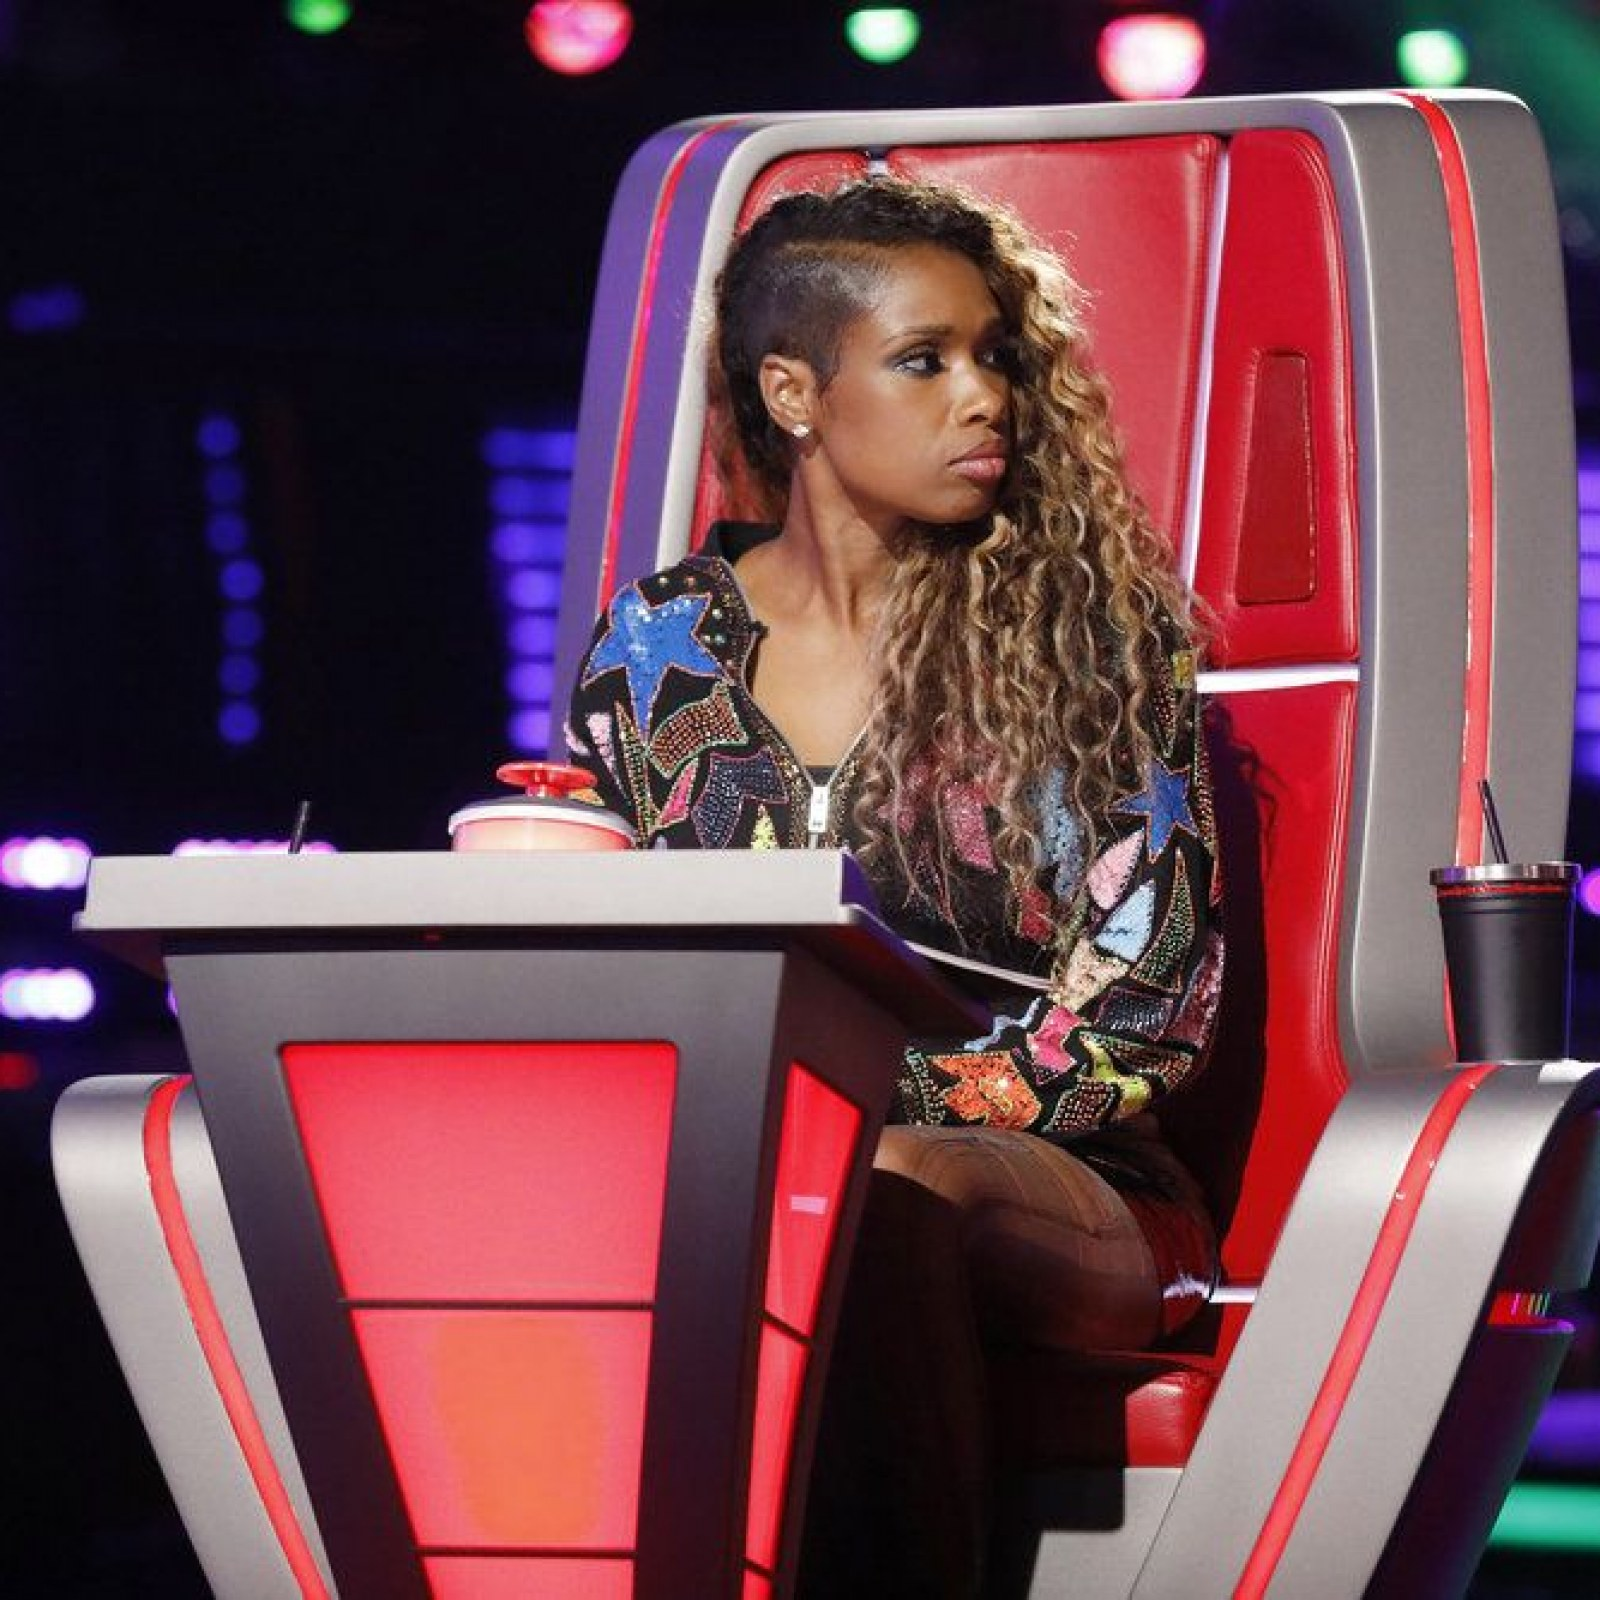 The Voice' Season 15 Blind Auditions 5 Recap: Who Made the